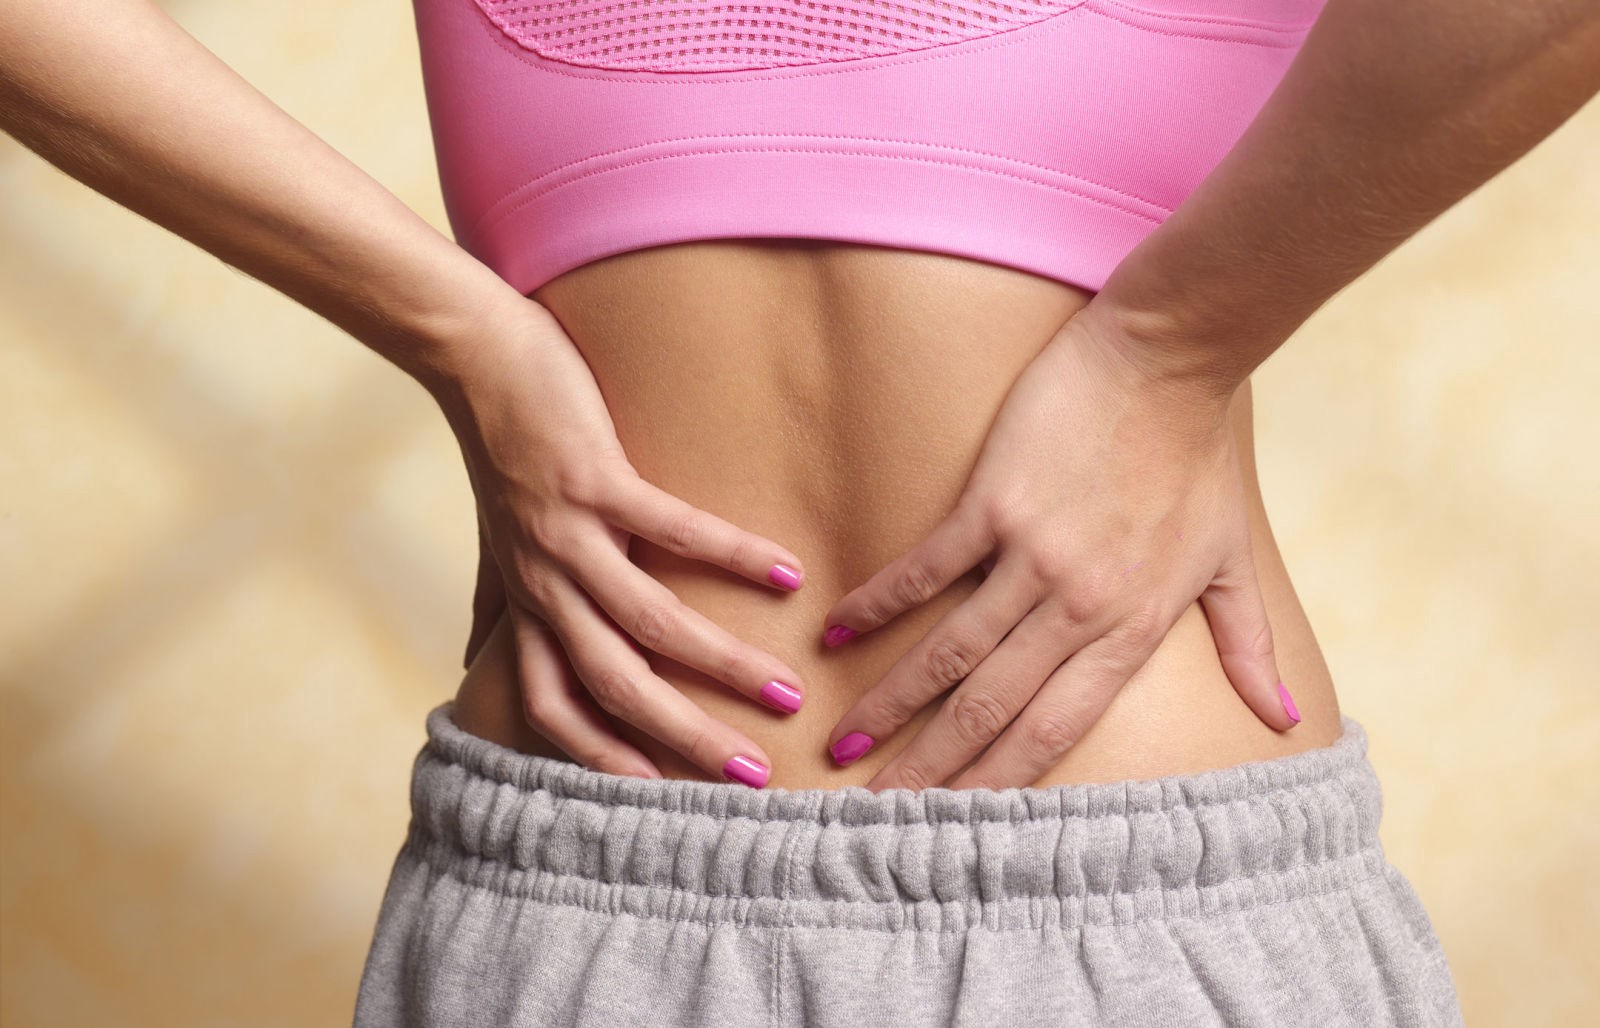 10 Worst Exercises for Low Back Pain